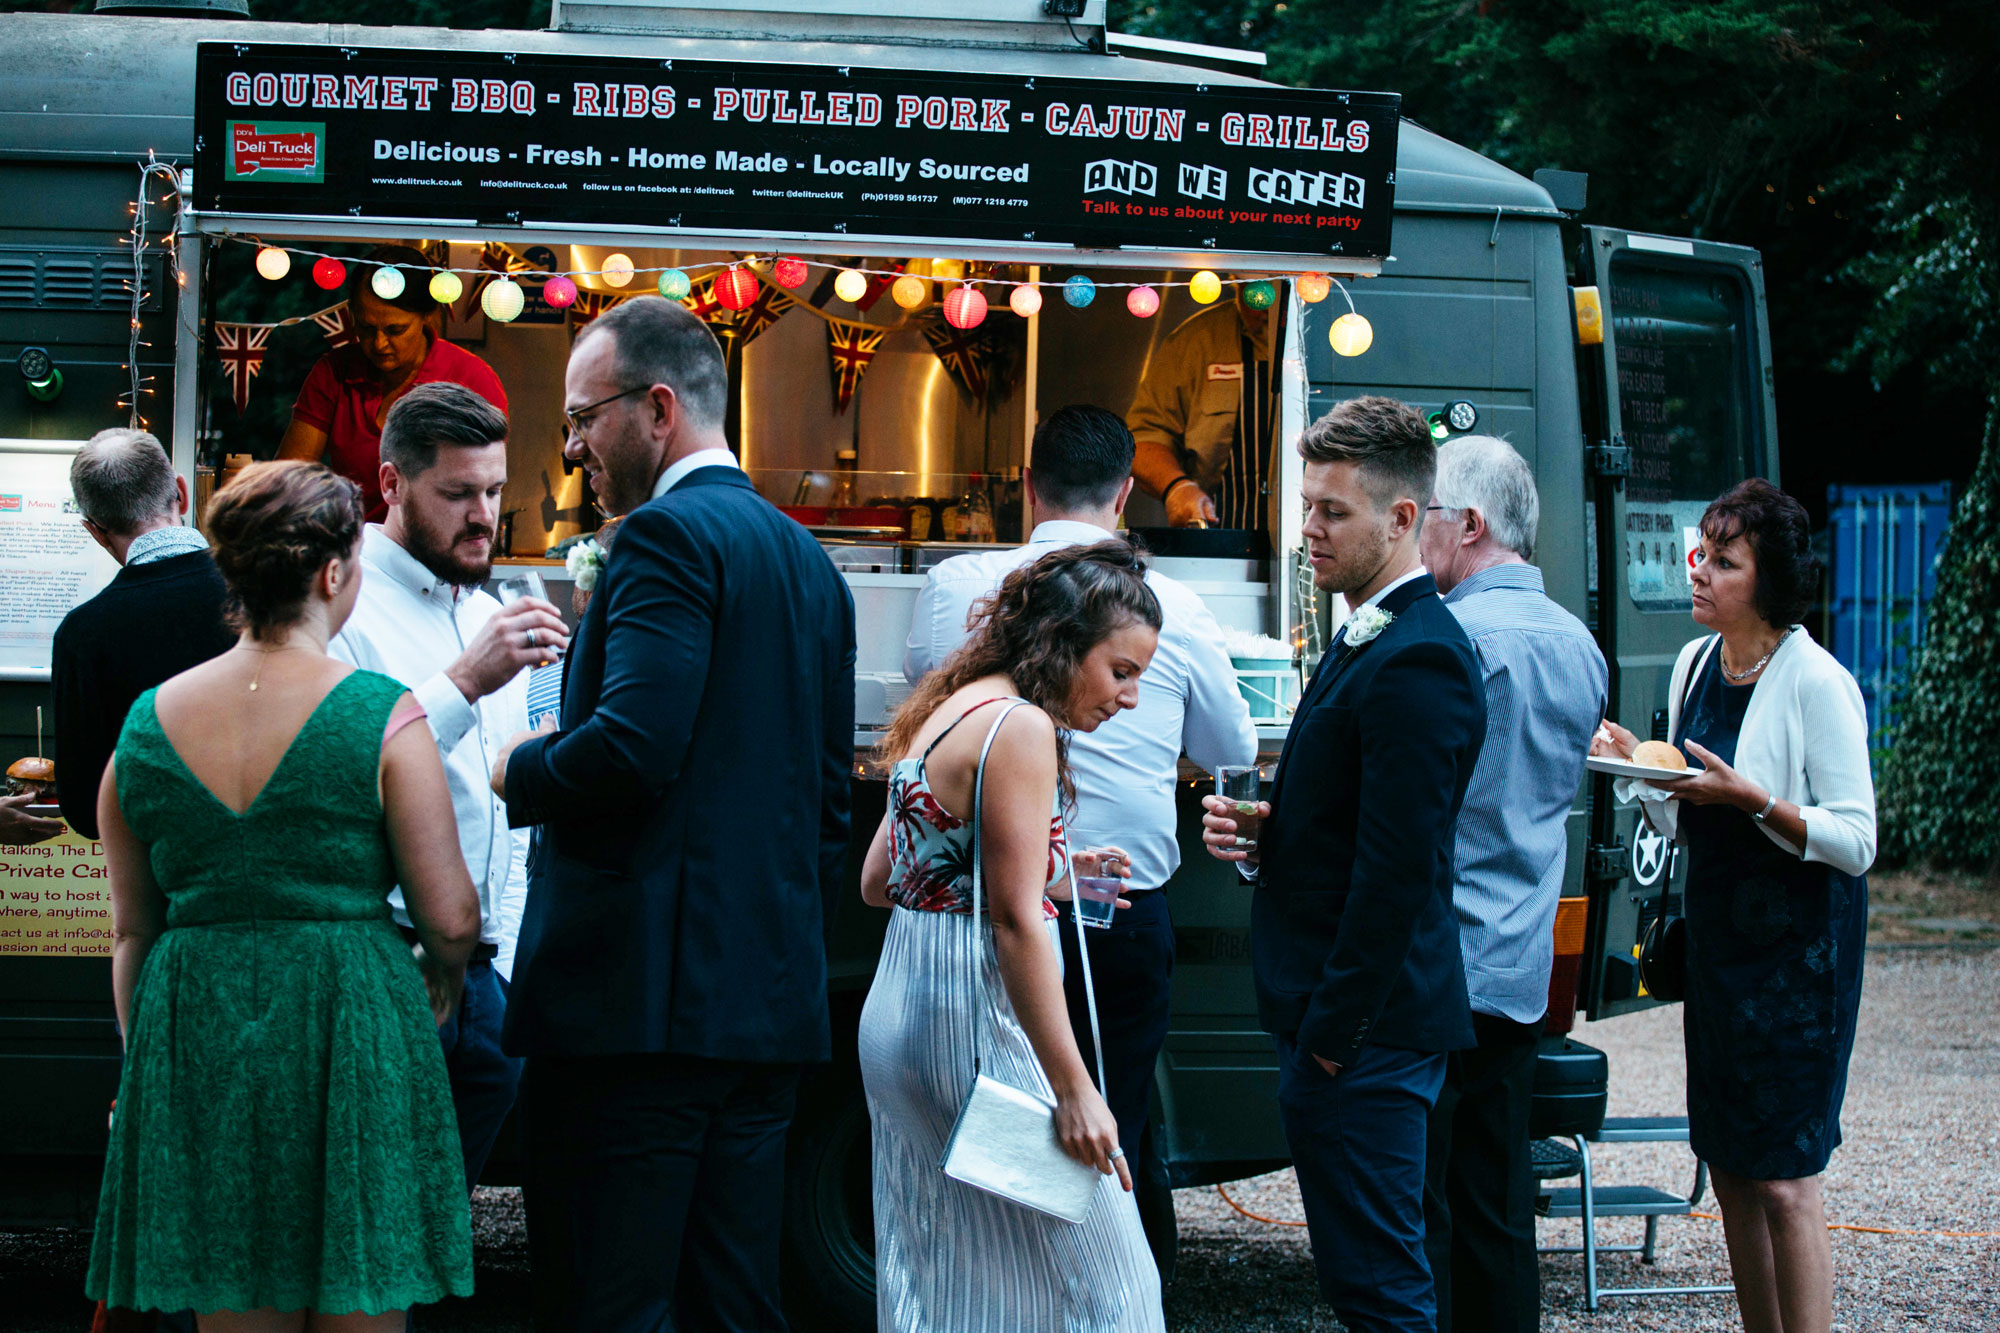 Wedding catering, wedding food, deli truck, street food,